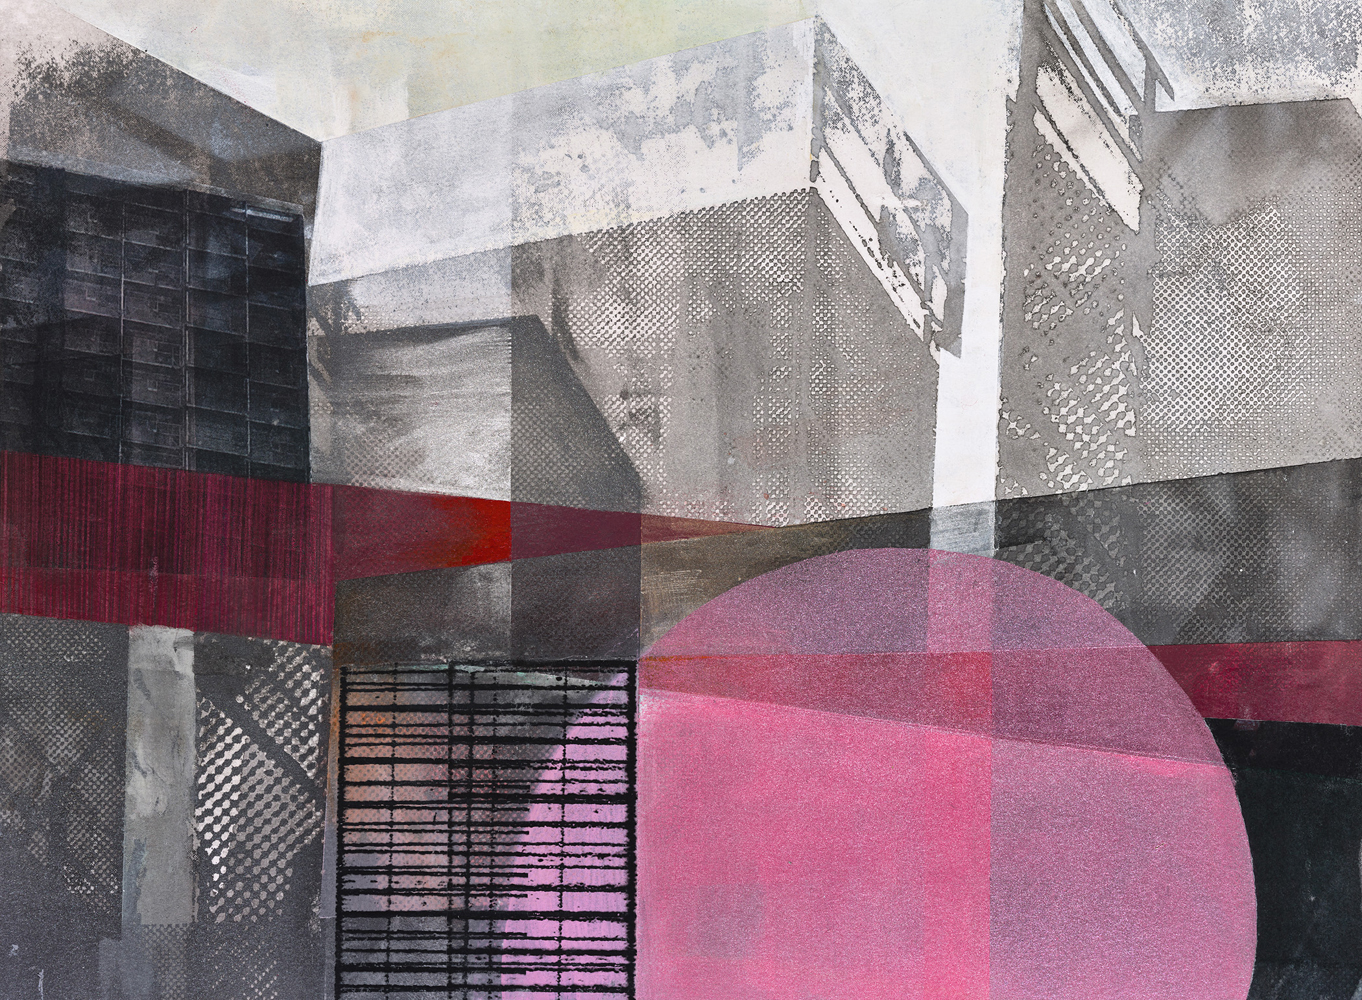 Amanda Knowles, Street View IV, 2020, screen print, graphite, acrylic on paper, 11 x 15, $600.